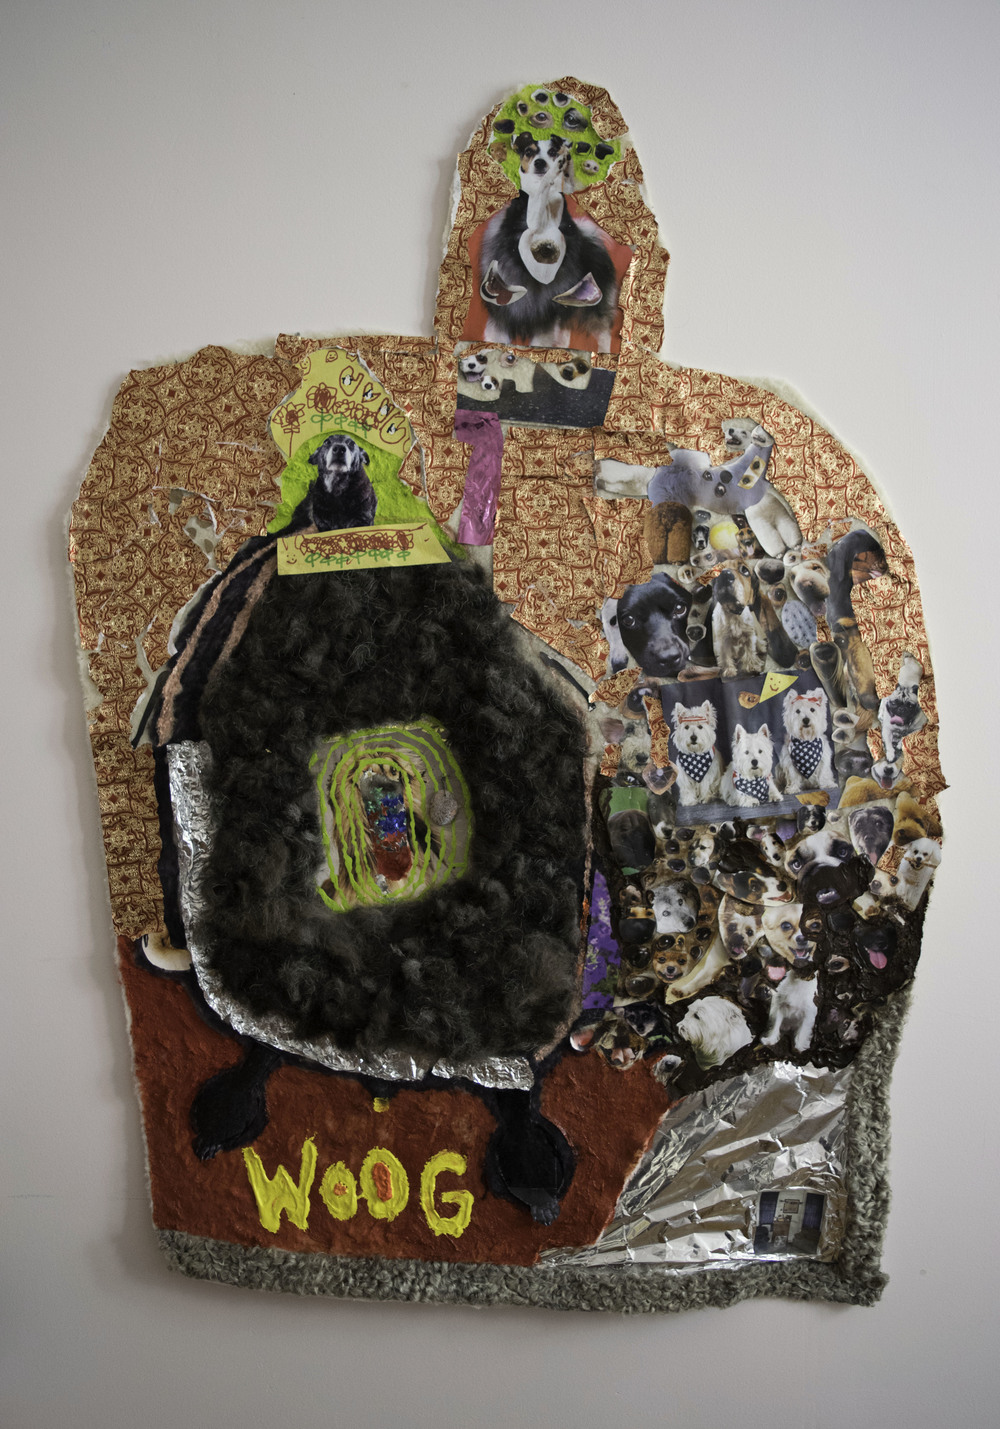 Shoog Shrine (Woog Crest)